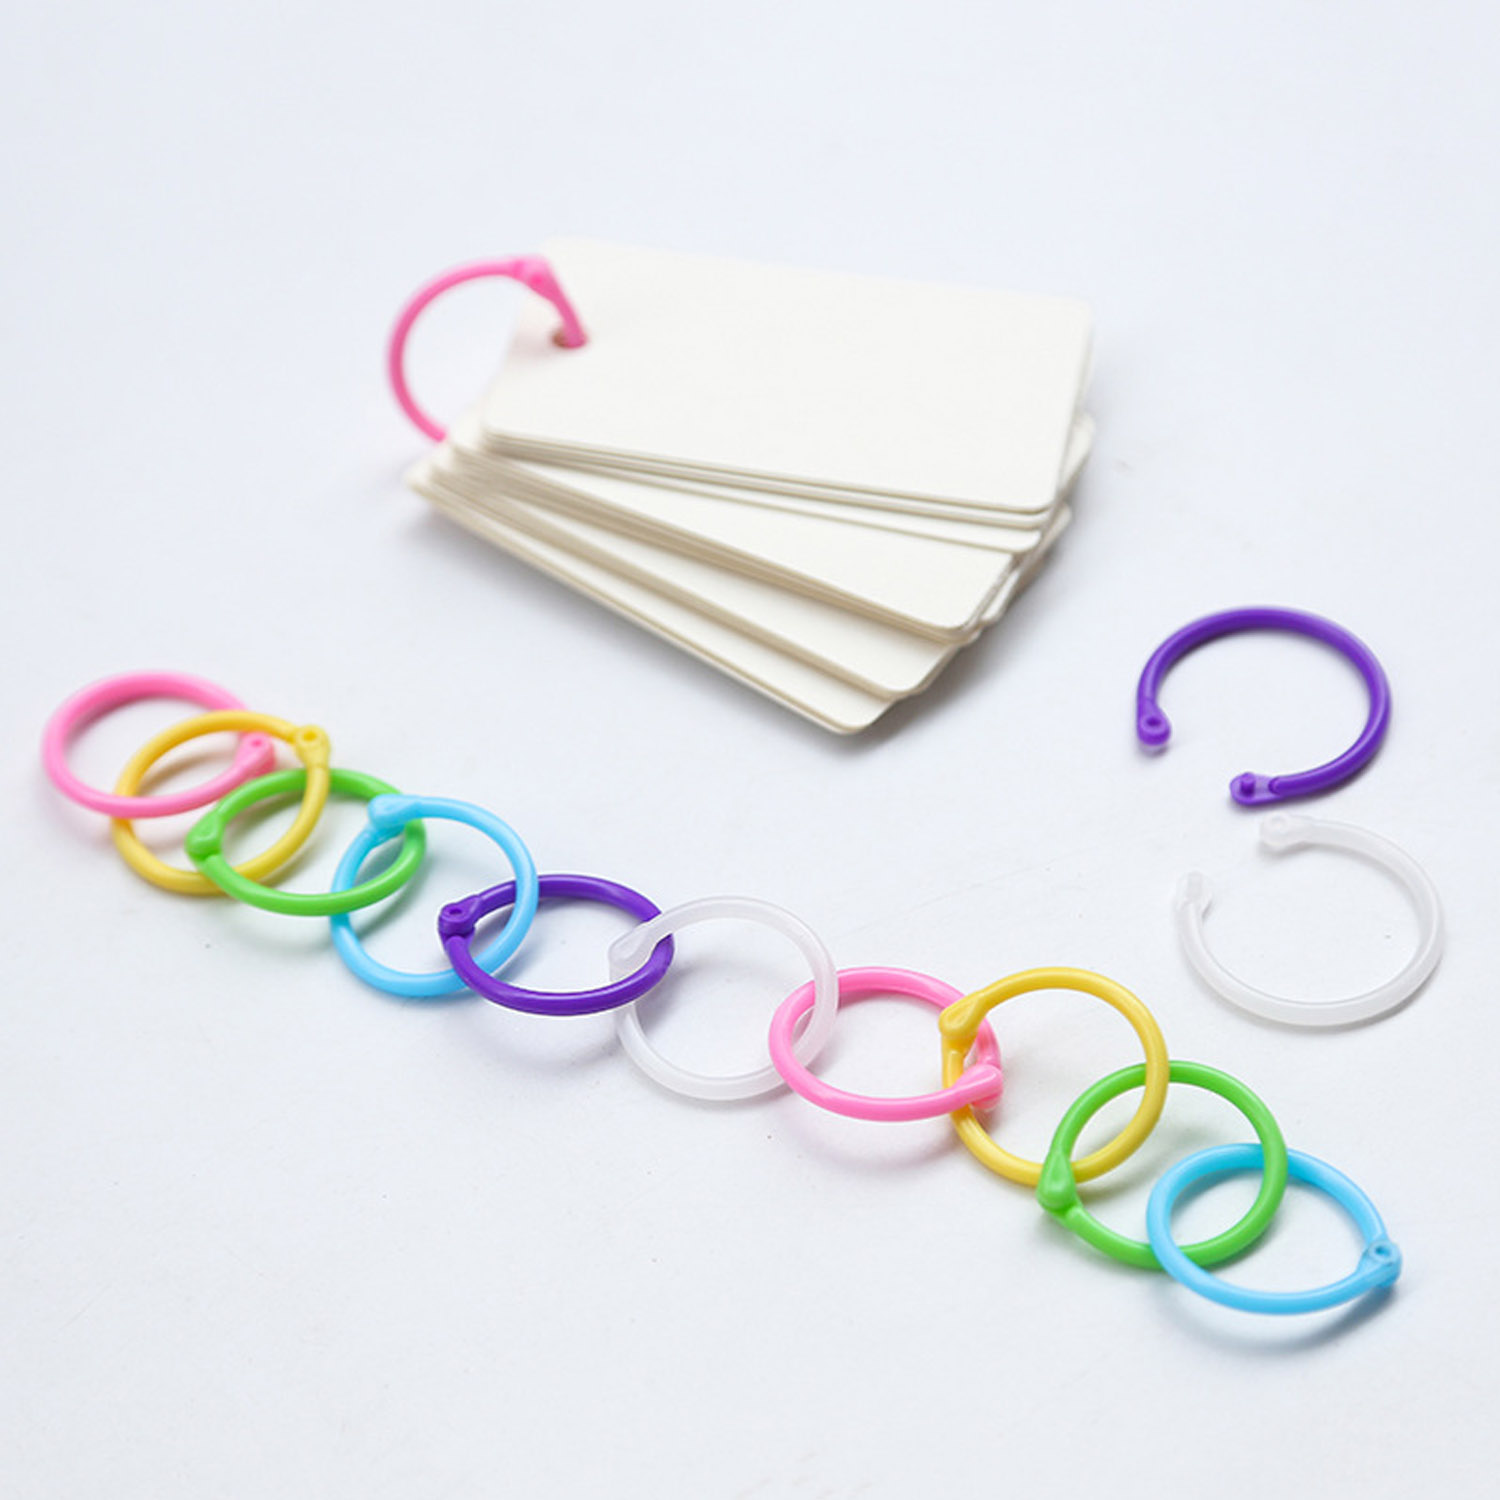 1 Box Colored Easy Ring Plastic Binder Snap Calendar Rings For Loose Leaf Paper Cards Photo Album Menu Book 1 Inch Random Colors